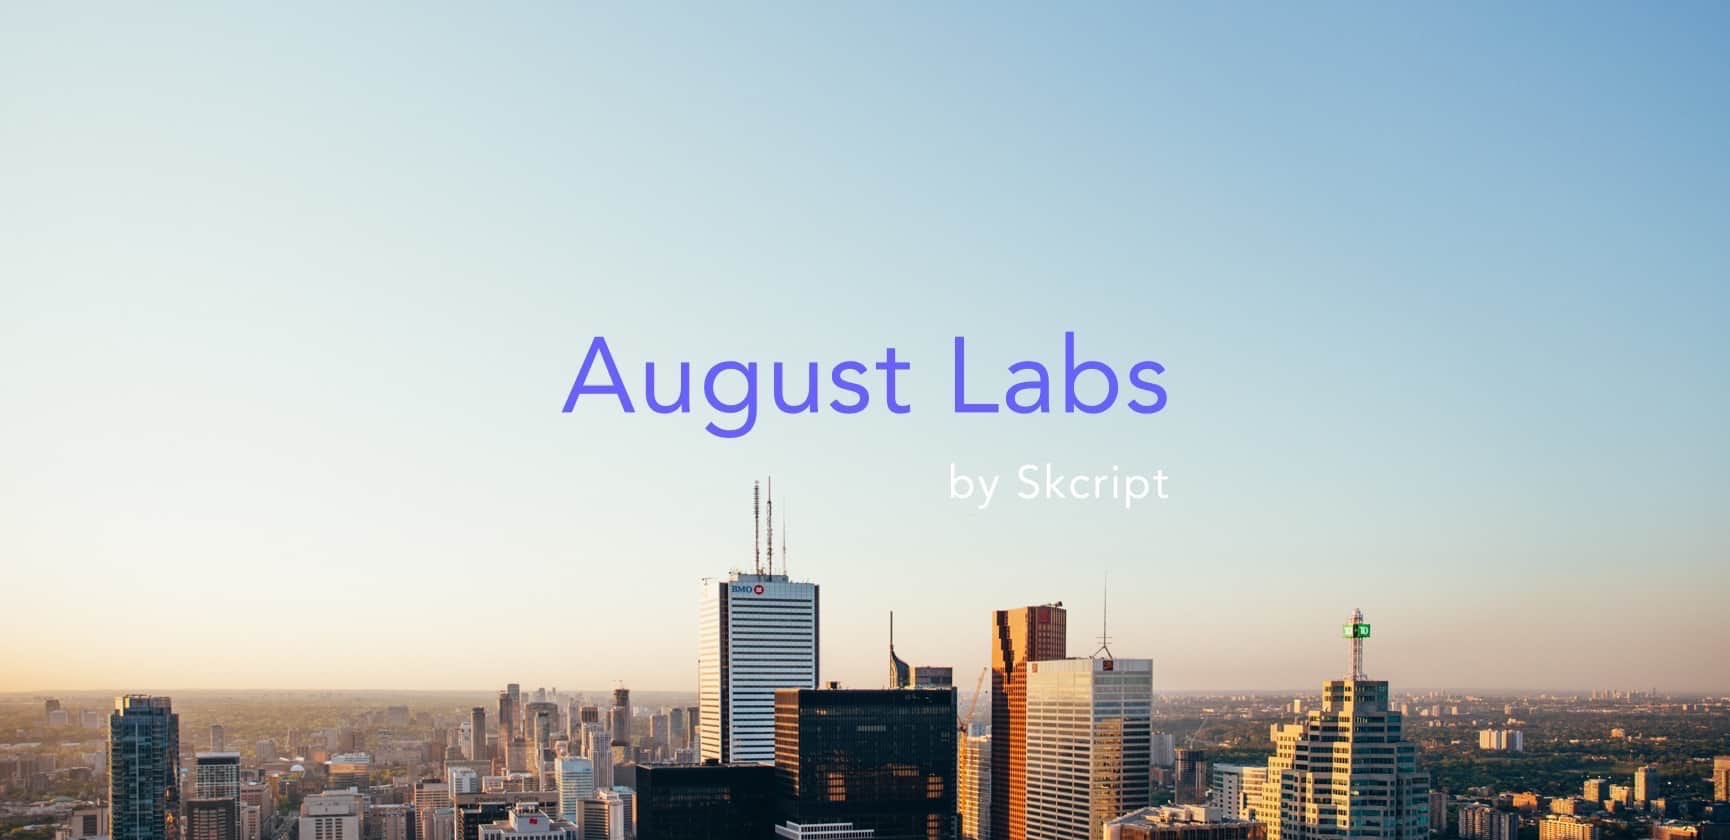 August Labs to help enterprises work at the speed of startups 🎉